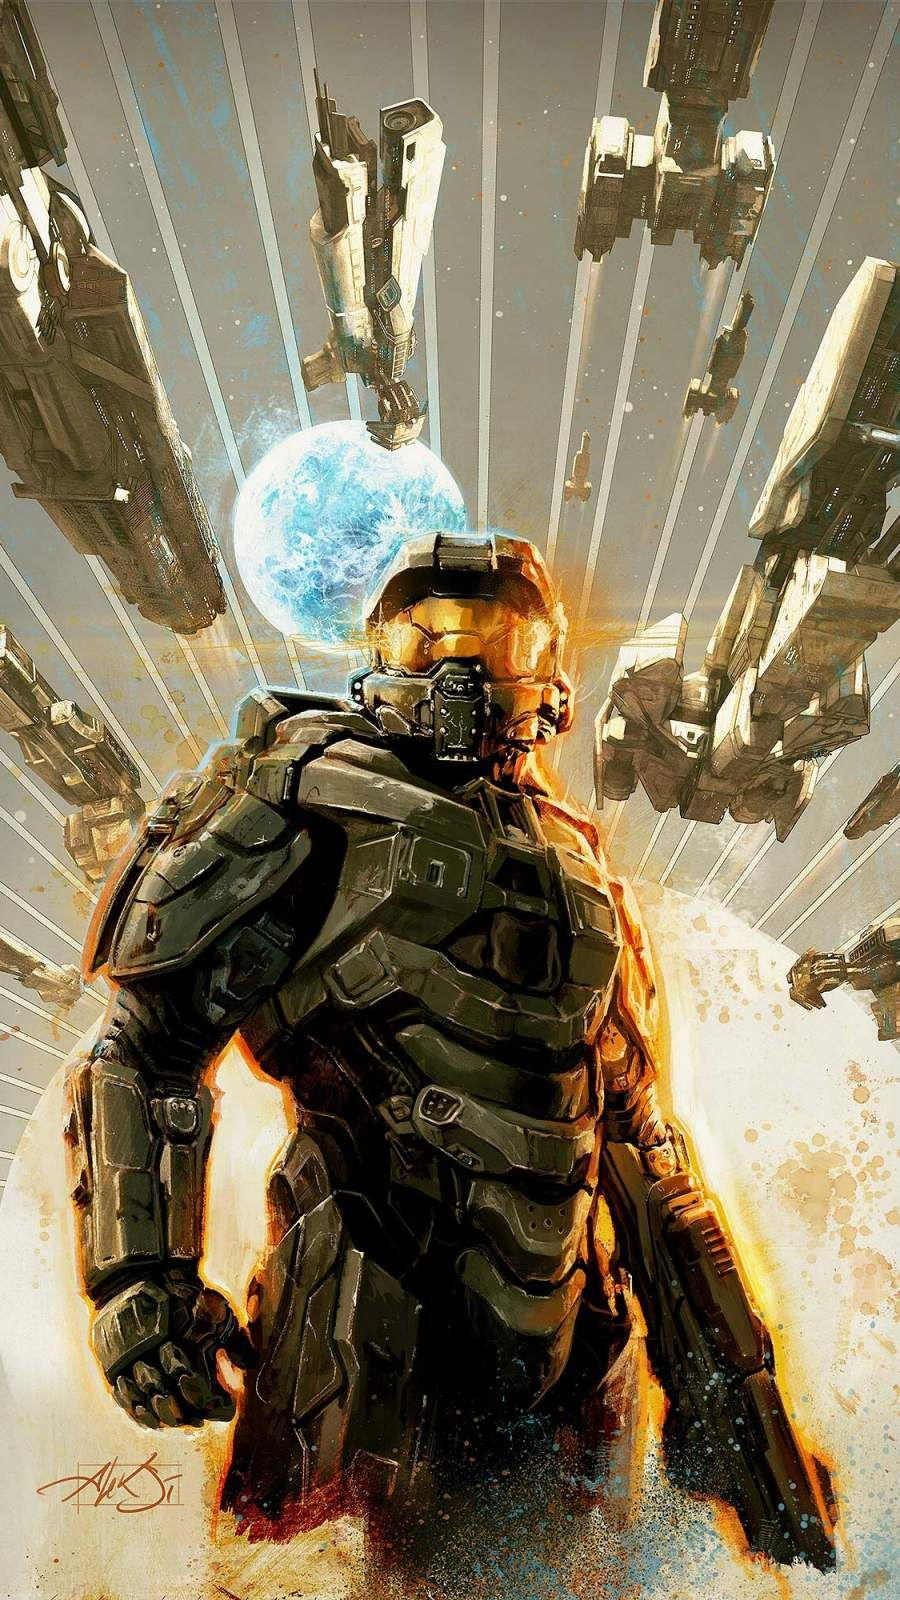 Halo Wallpapers Backgrounds Masterchief Battle Halo Combat Evolved Combat Evolved Halo